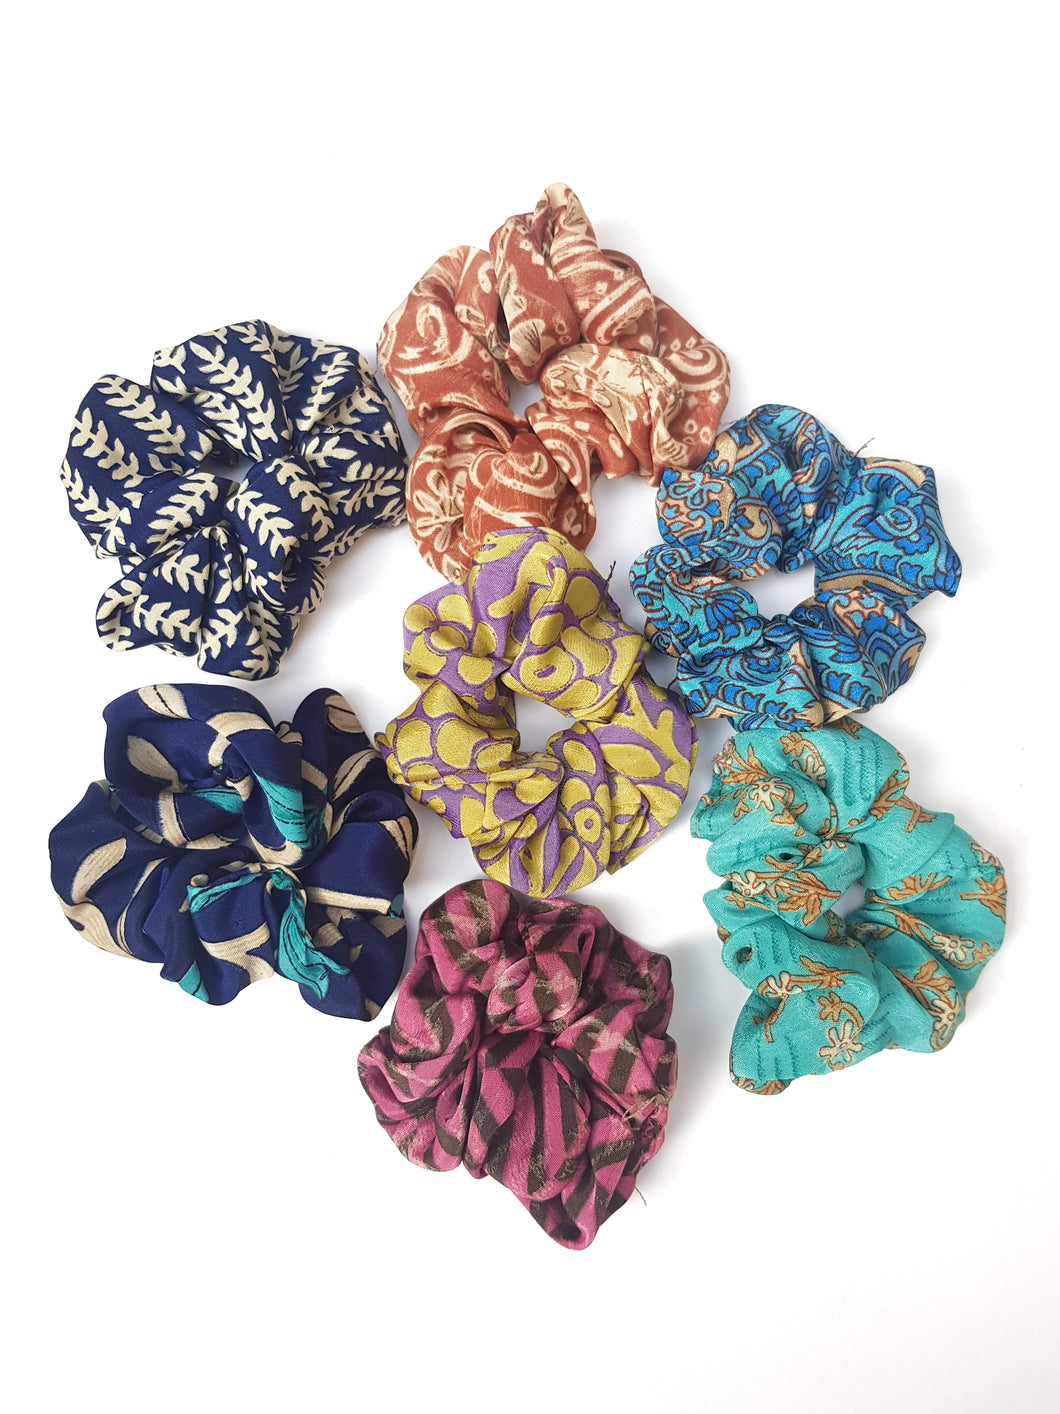 Small Silk Sari Scrunchies